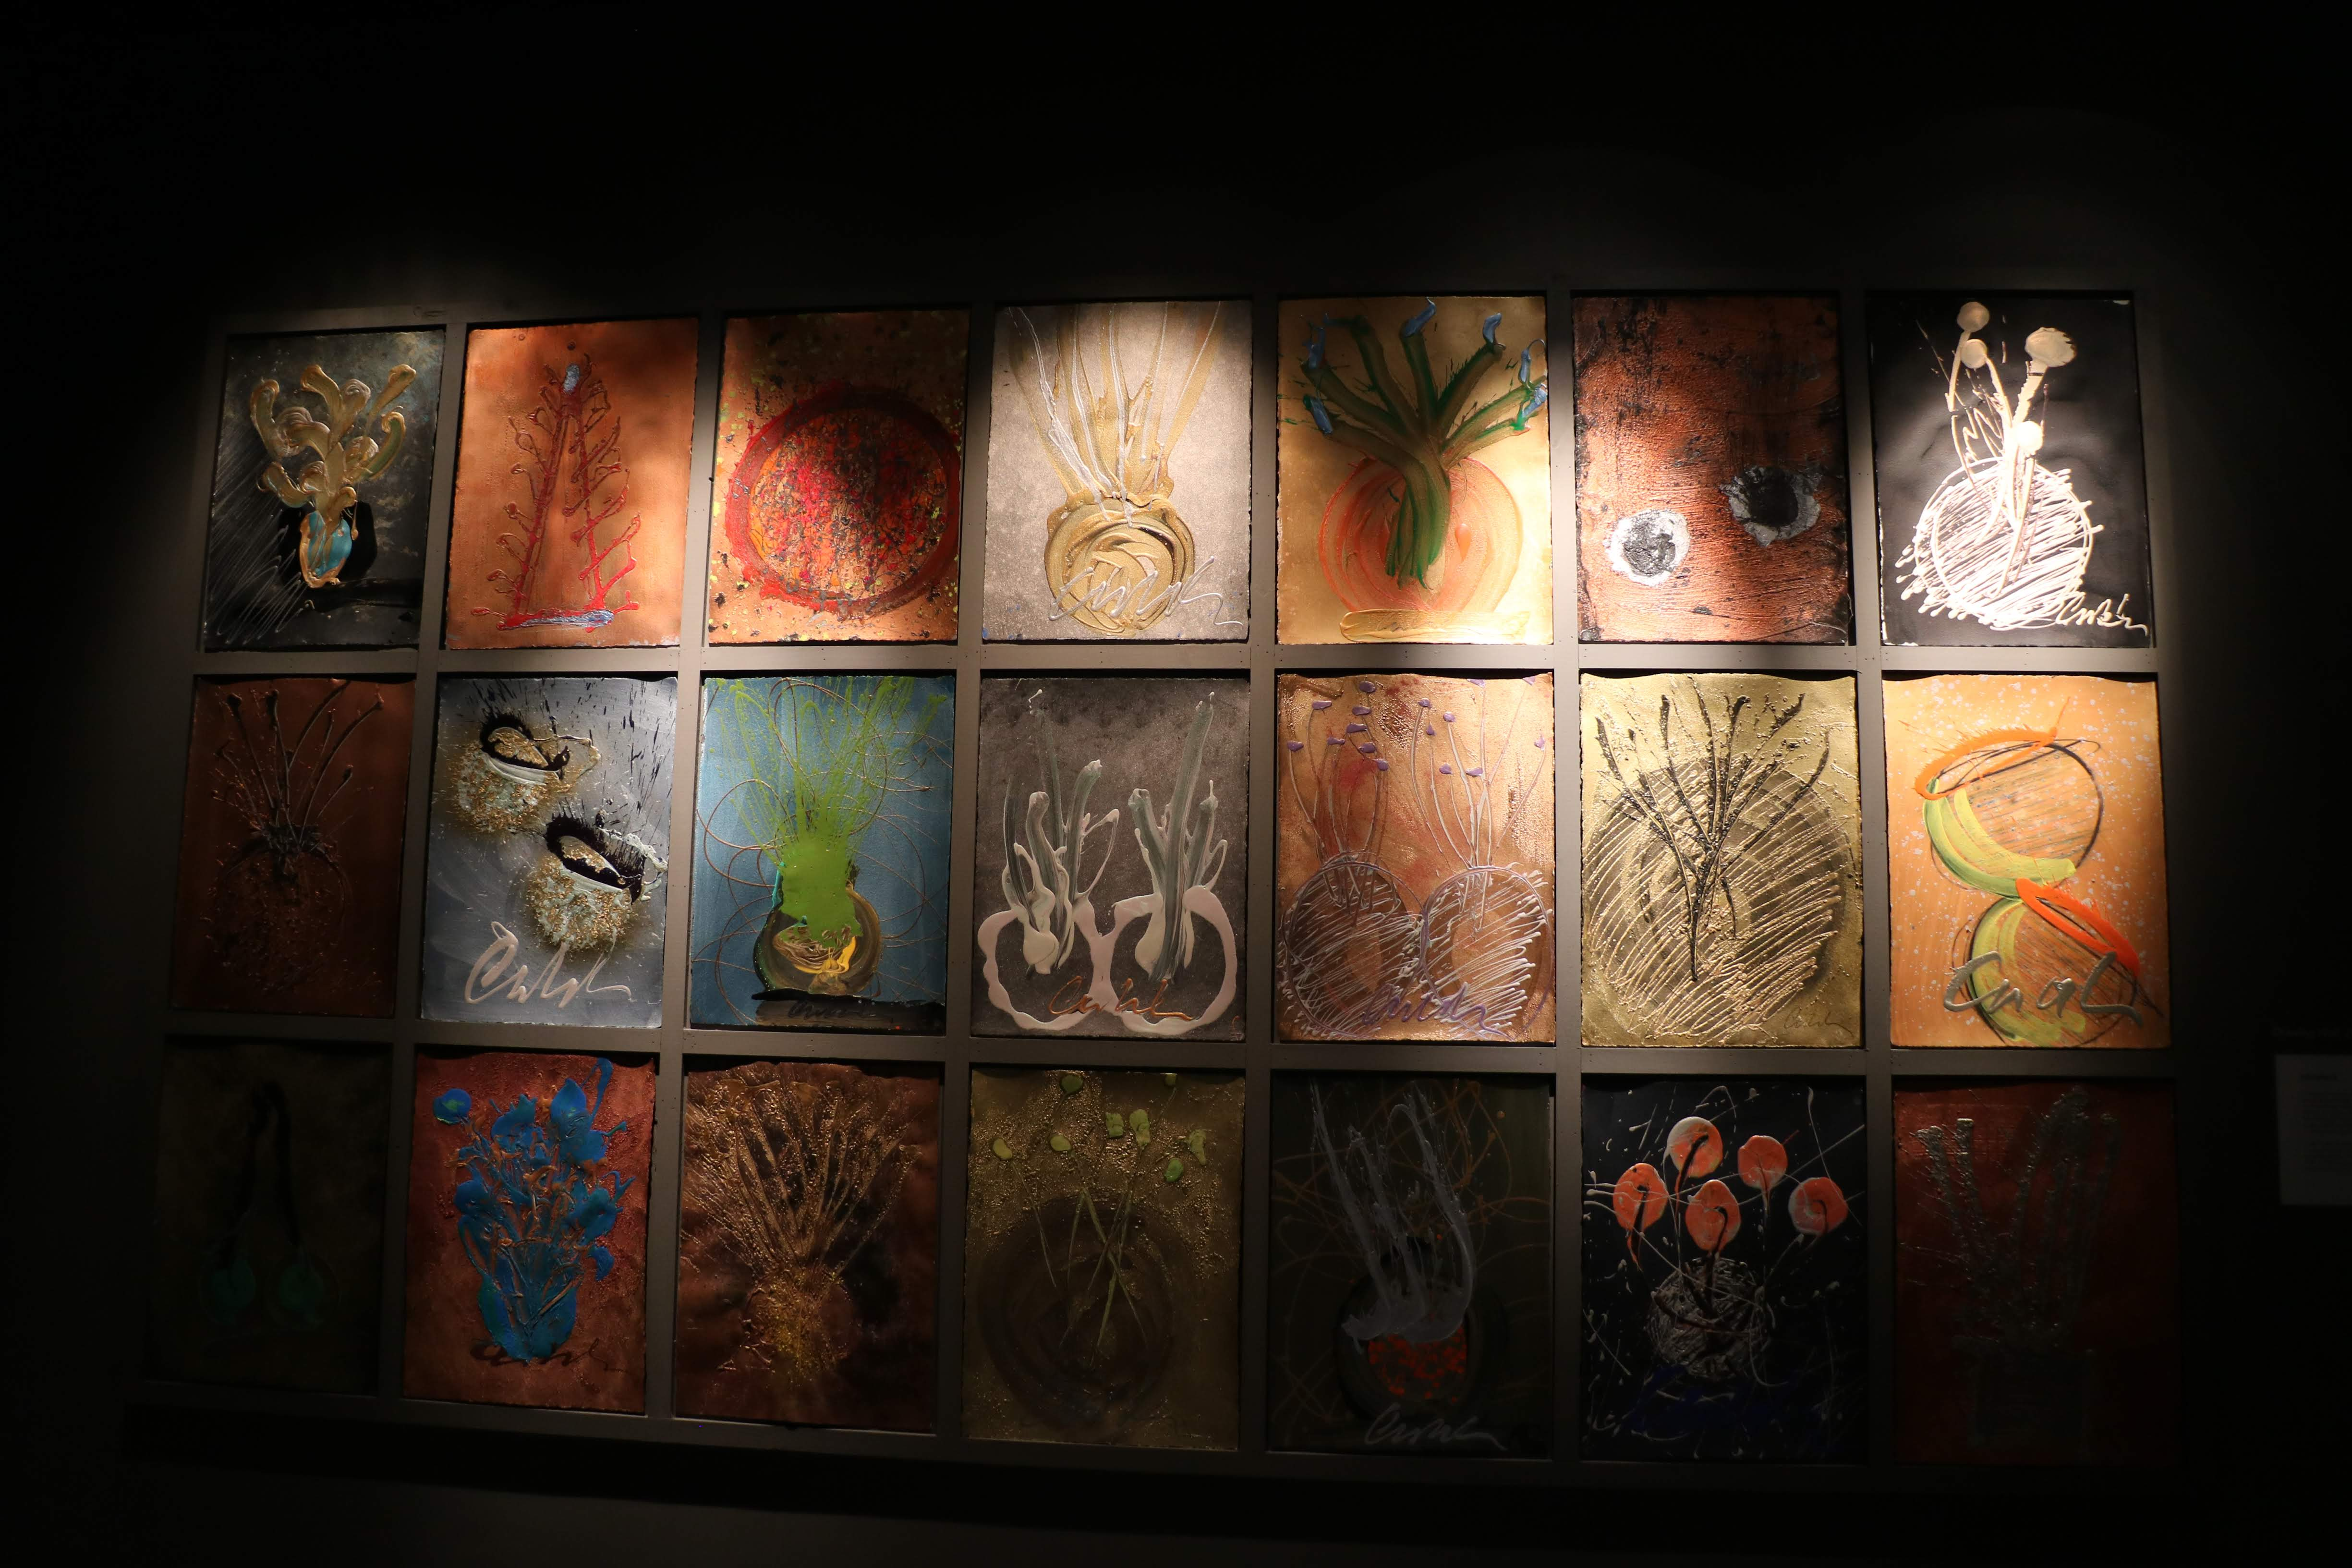 Dale Chihuly's drawings